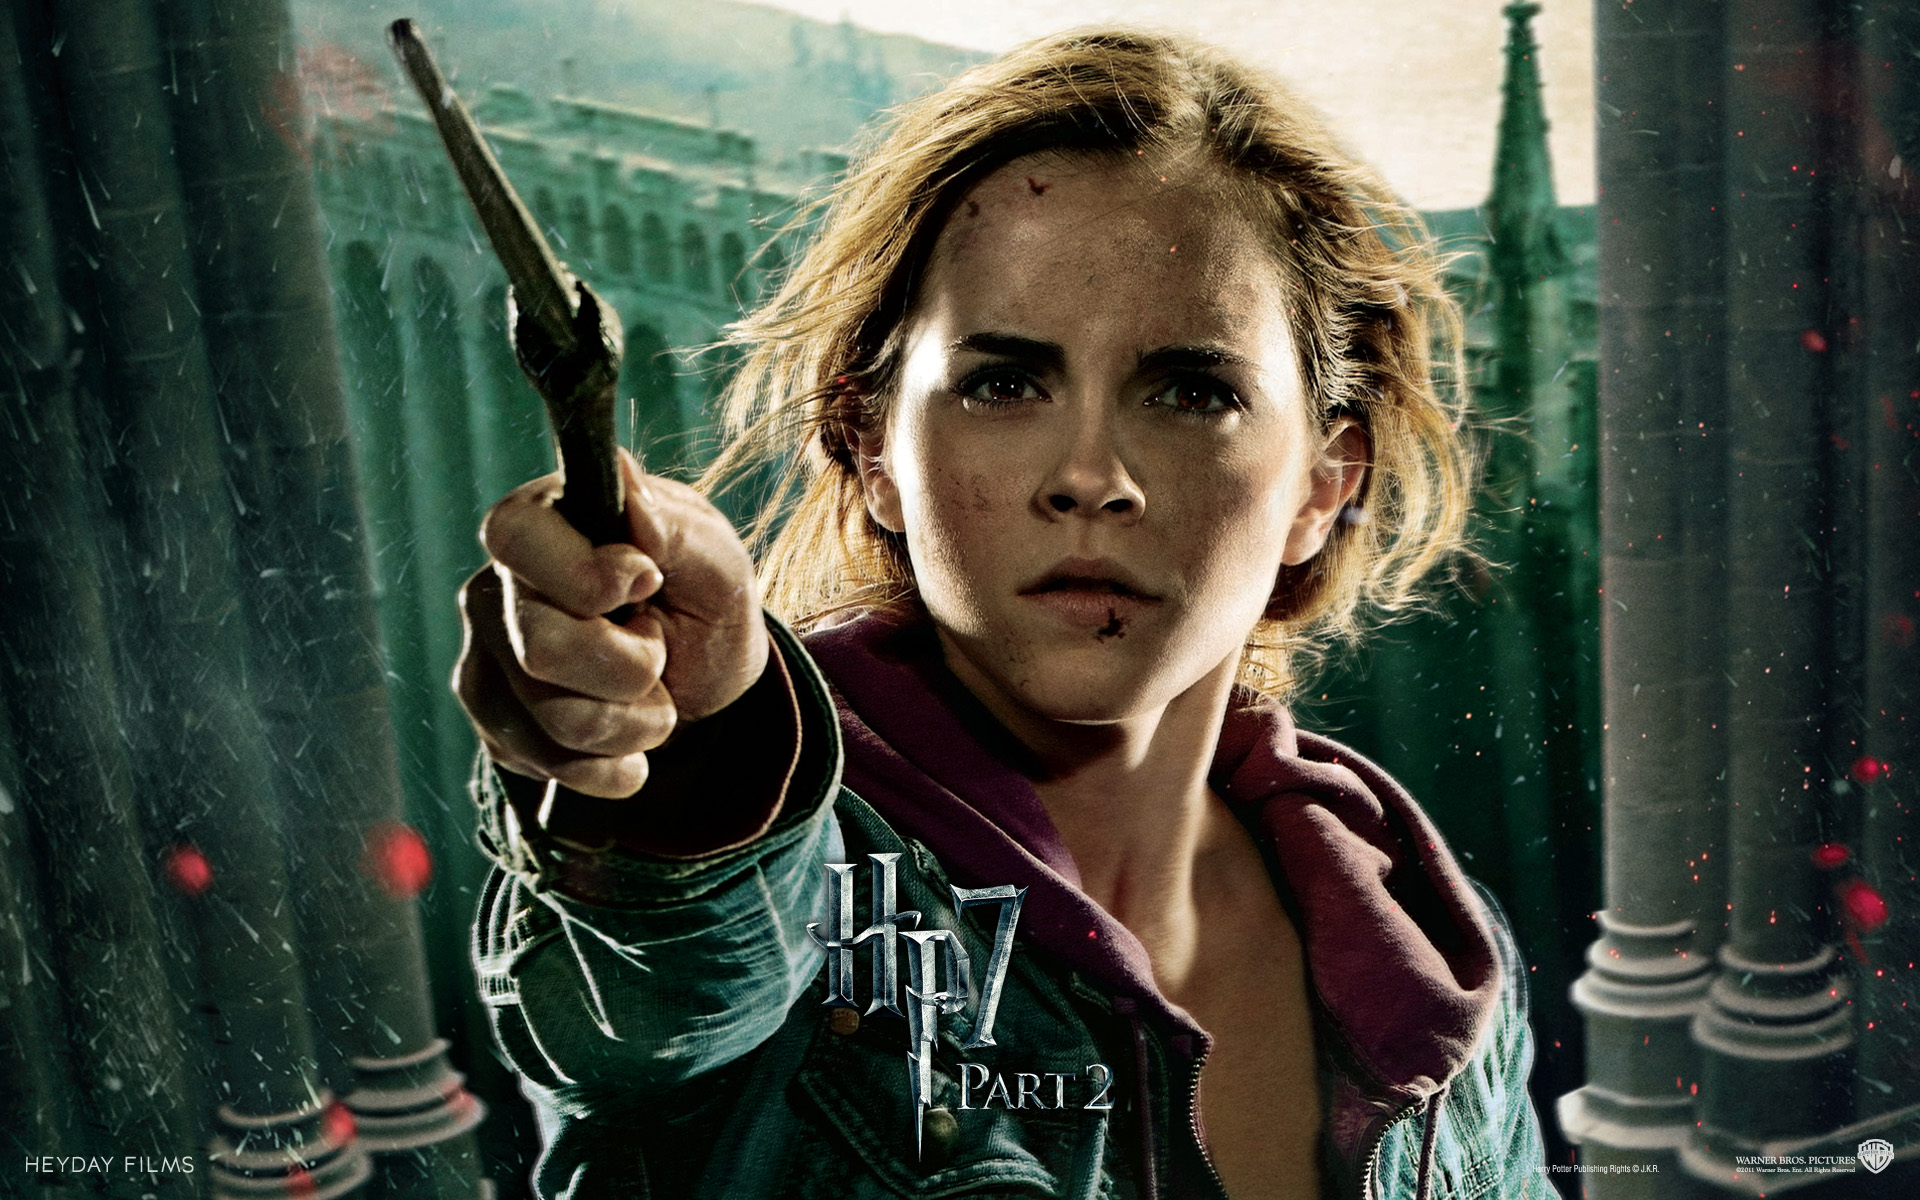 Emma Watson  in Harry Potter and The Deathly Hallows Part 2 652.17 Kb